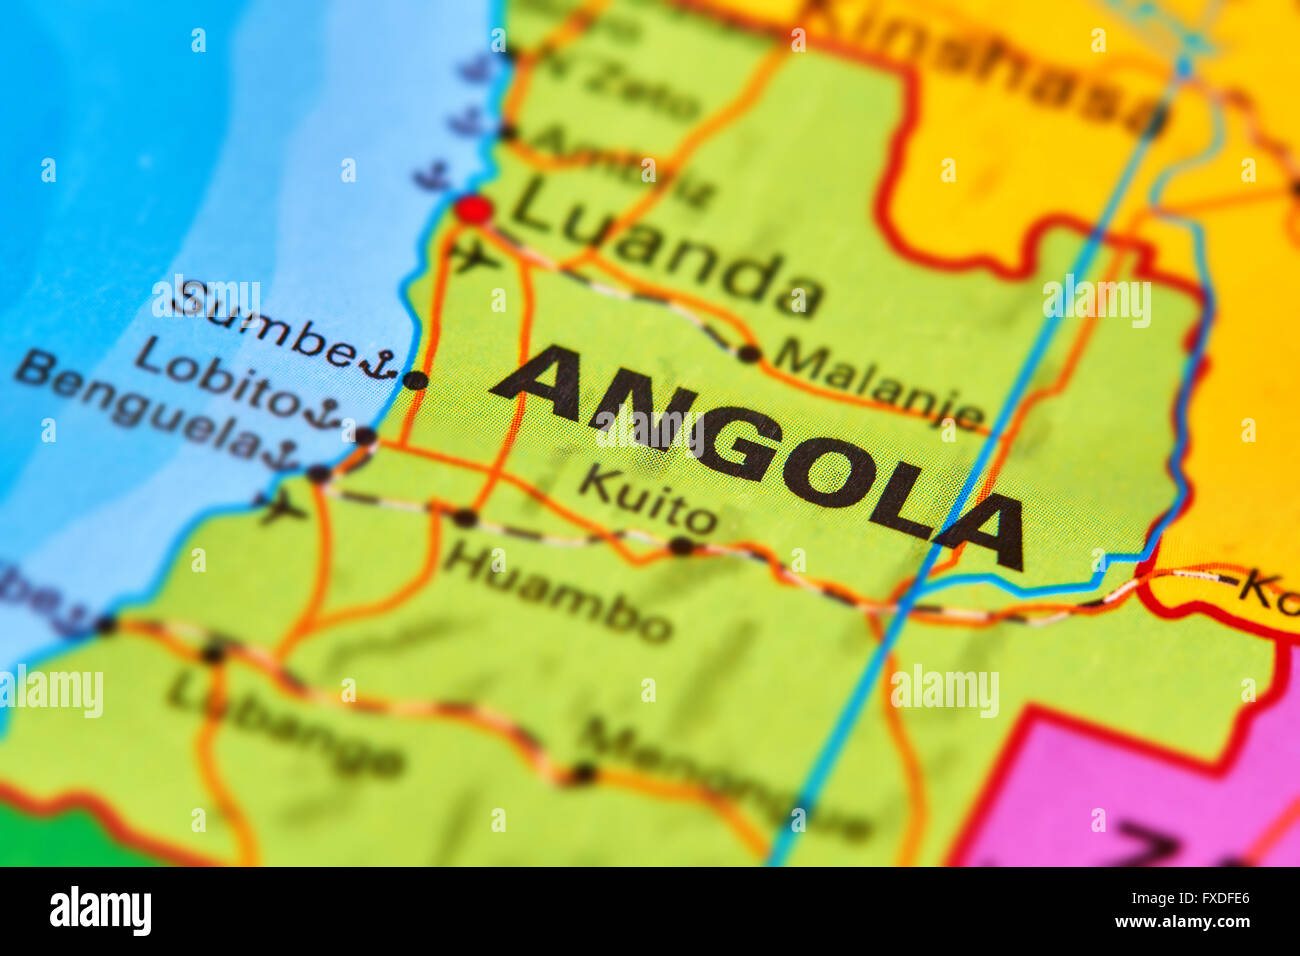 Angola Country in Africa on the World Map - Stock Image